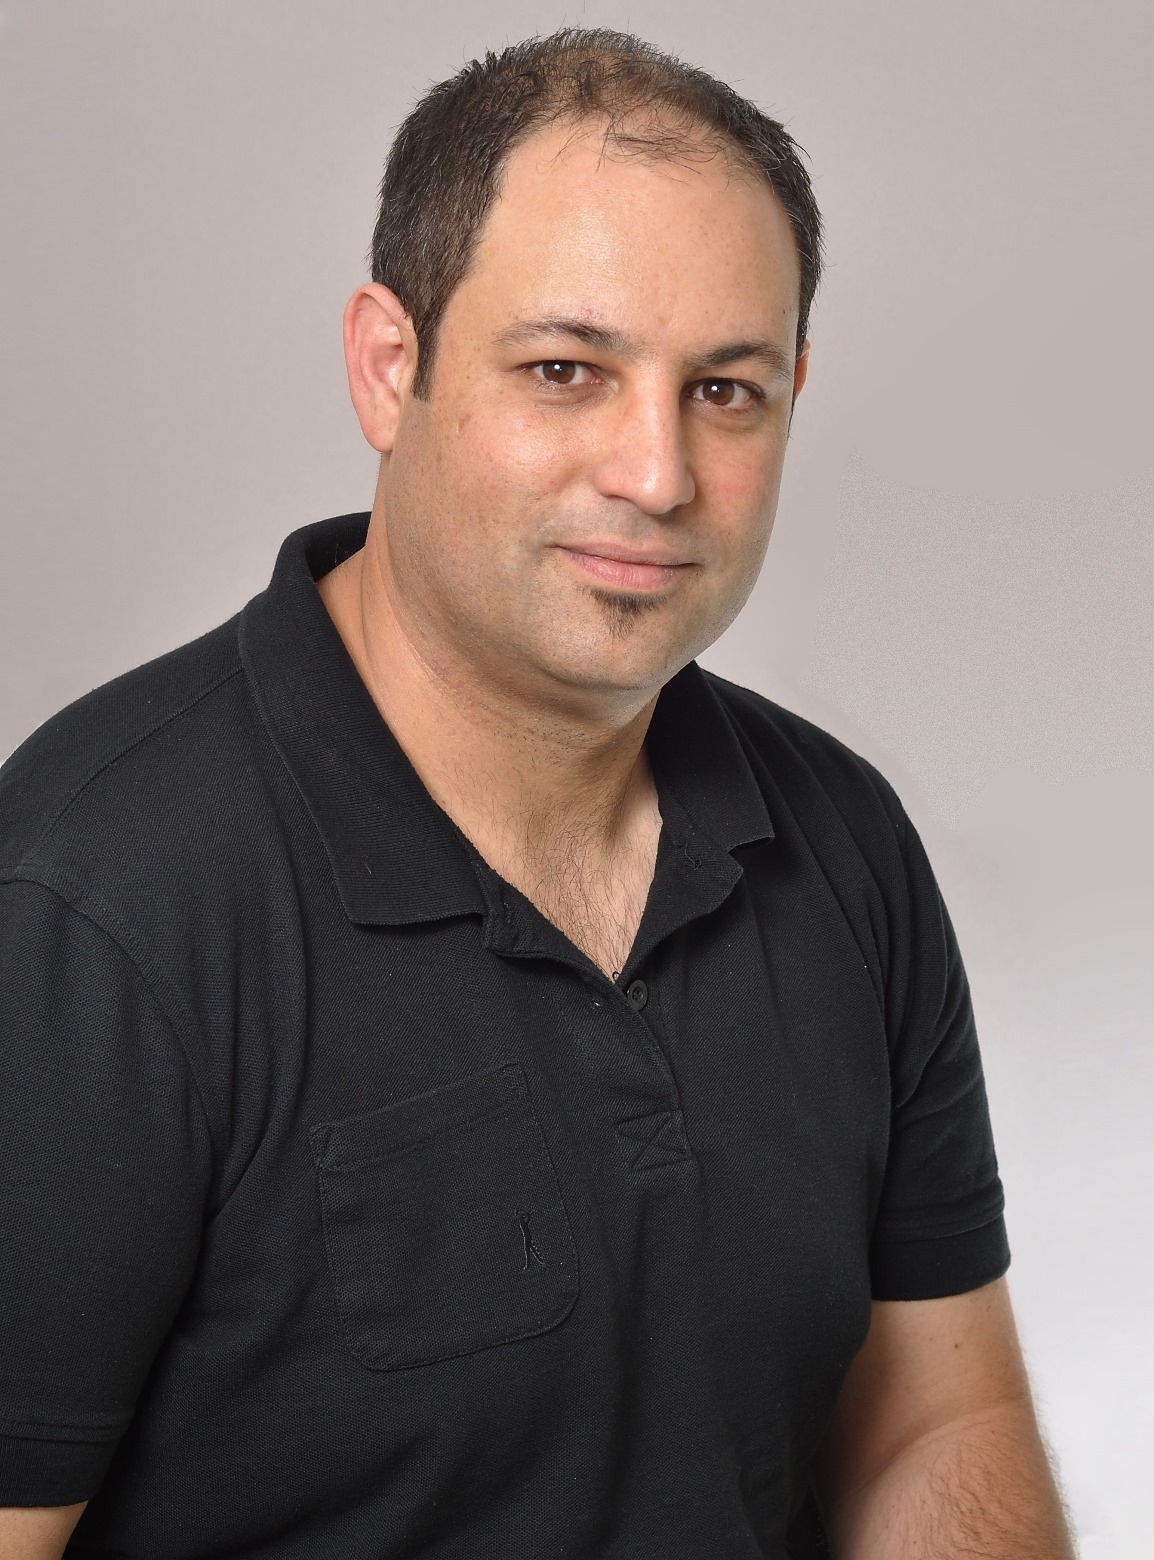 Medisafe CEO Omri Shore. Photo: Courtesy